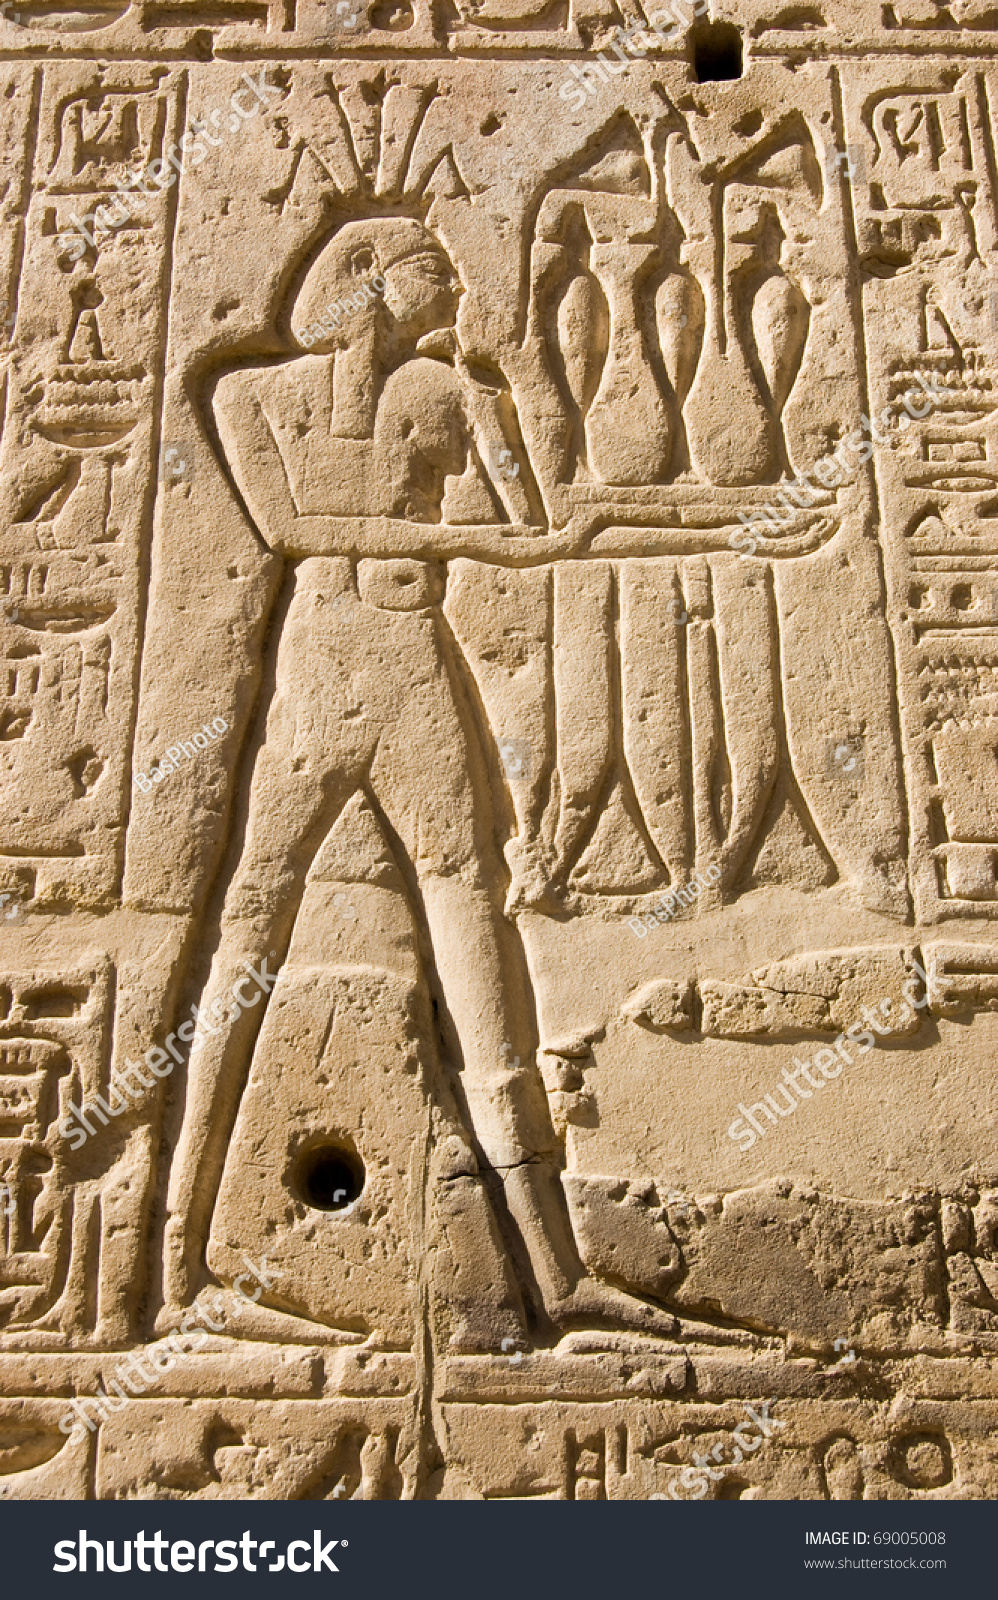 Stone carving ancient egyptian god river stock photo edit now stone carving of the ancient egyptian god of the river nile hapi shown wearing a izmirmasajfo